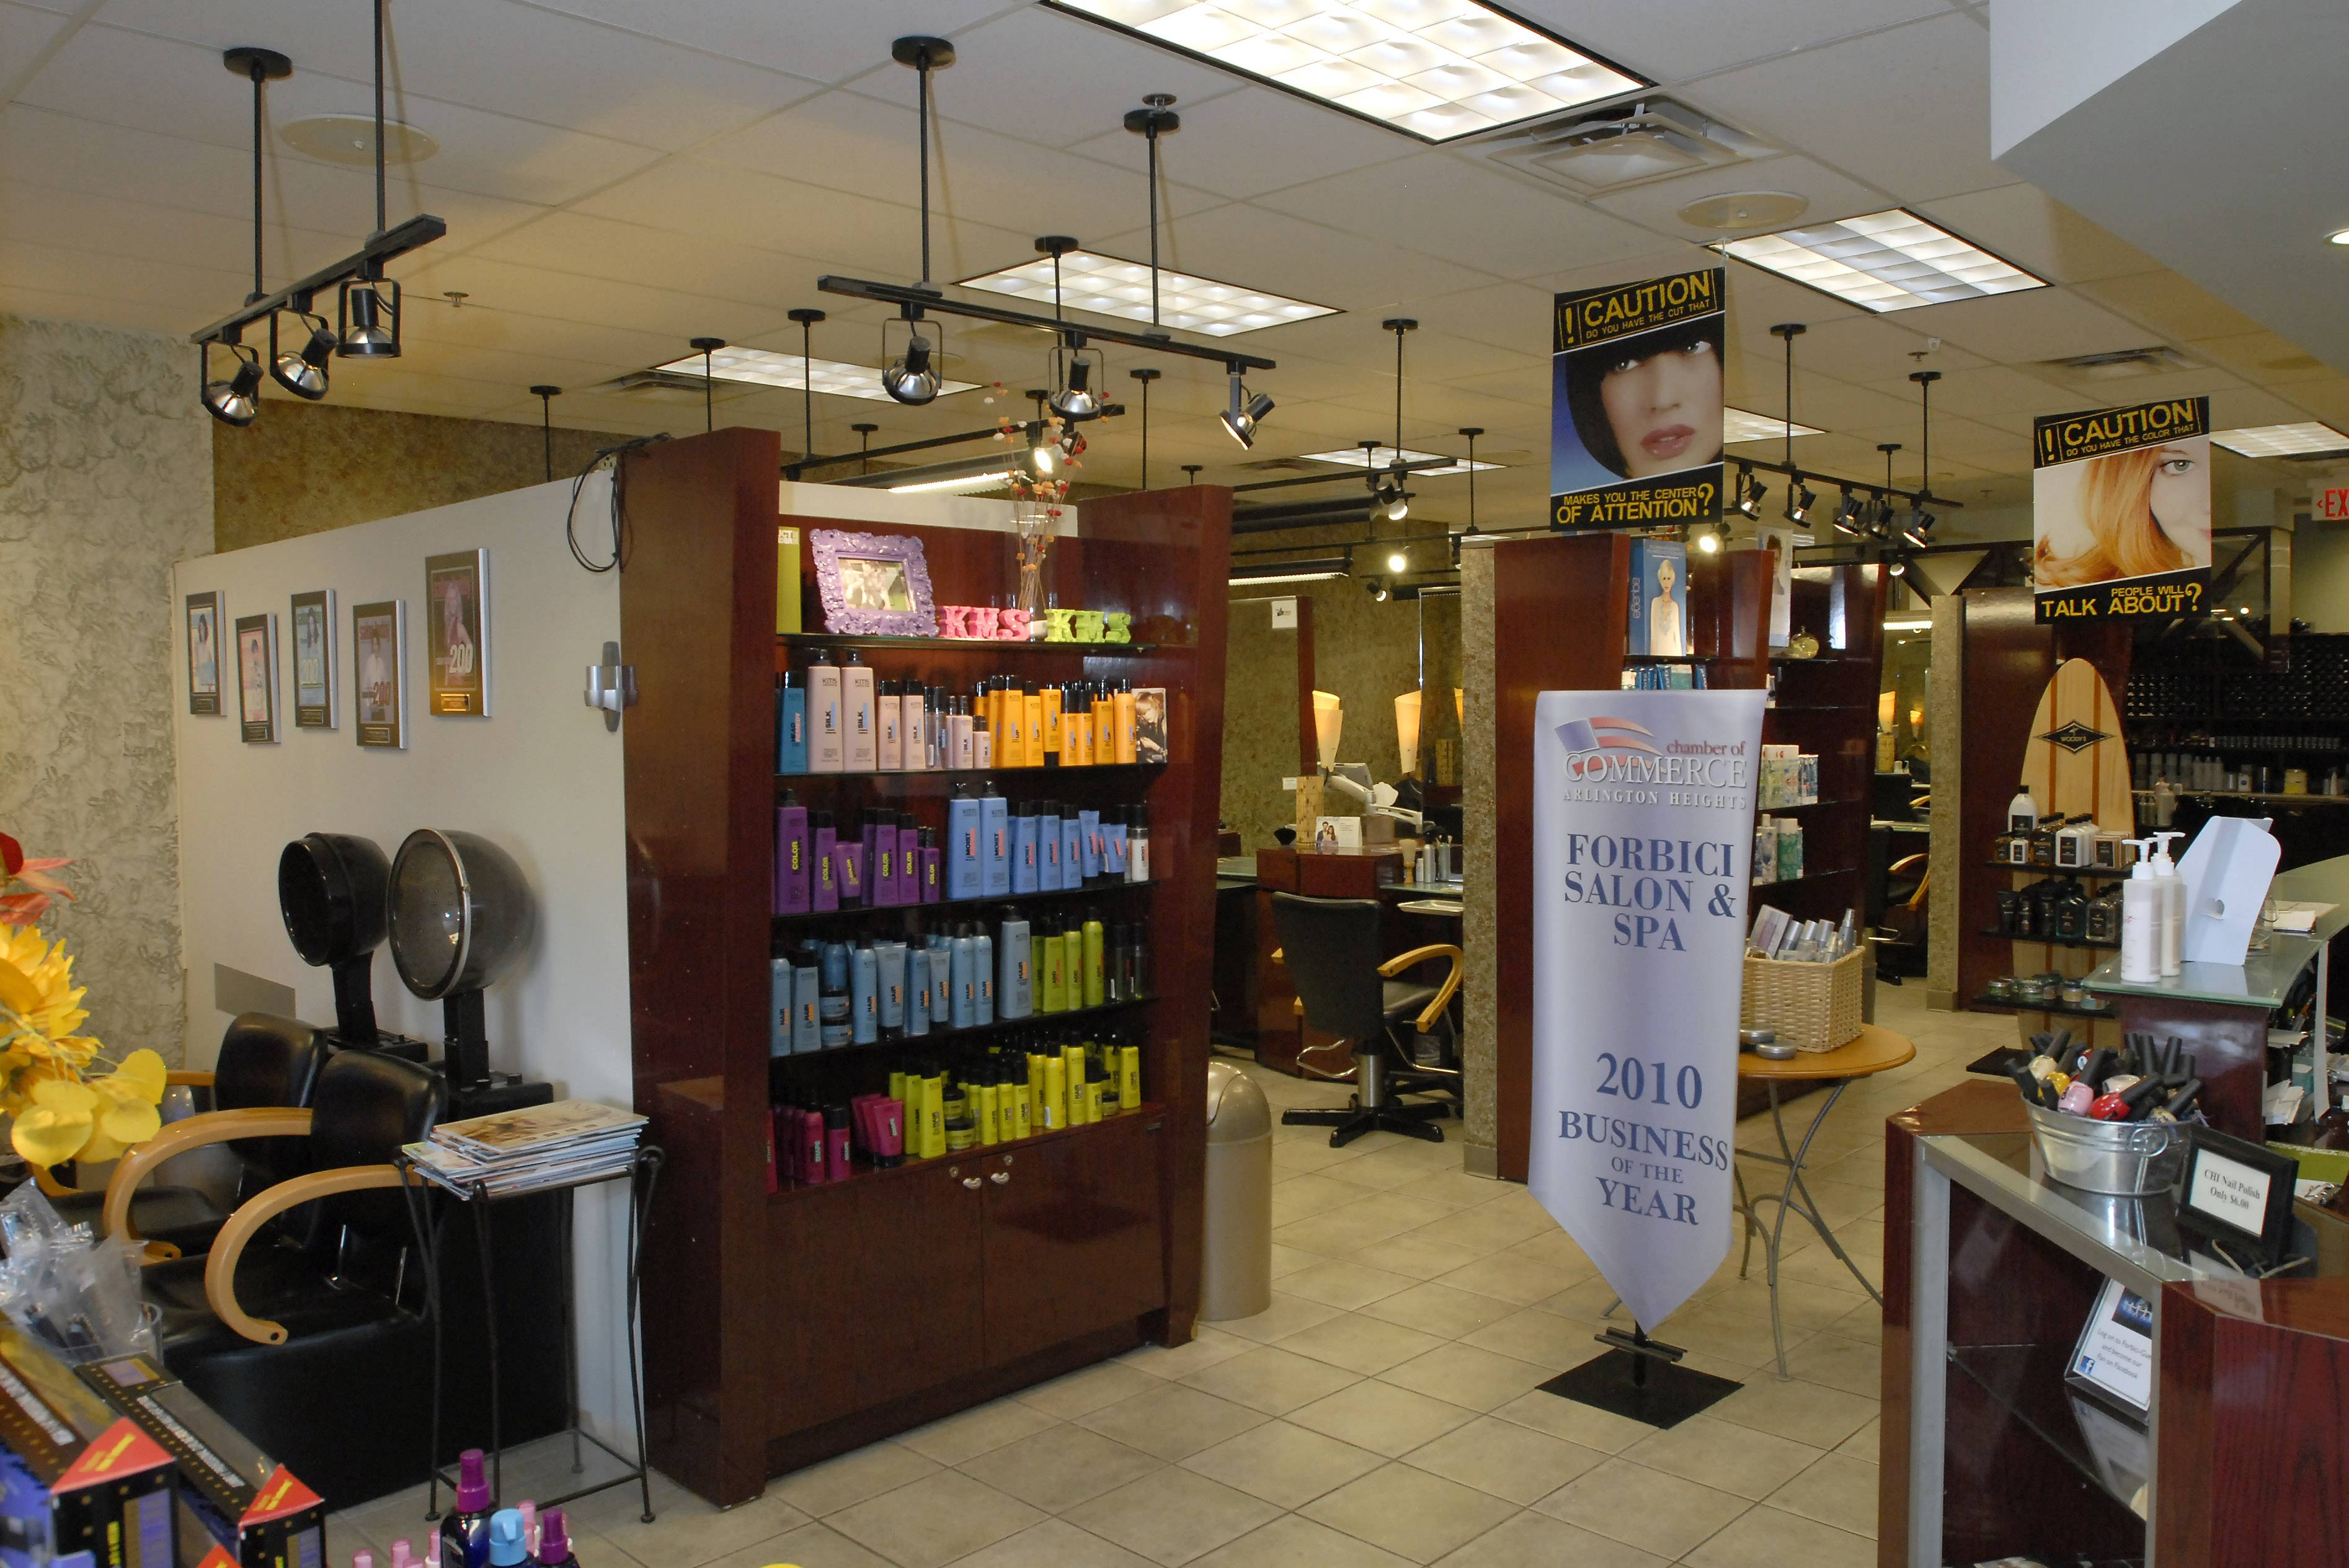 Forbici Salon and Spa in downtown Arlington Heights is poised to become the first salon in town to sell alcohol to customers, after the village board Monday approved a new liquor license classification that would allow it.